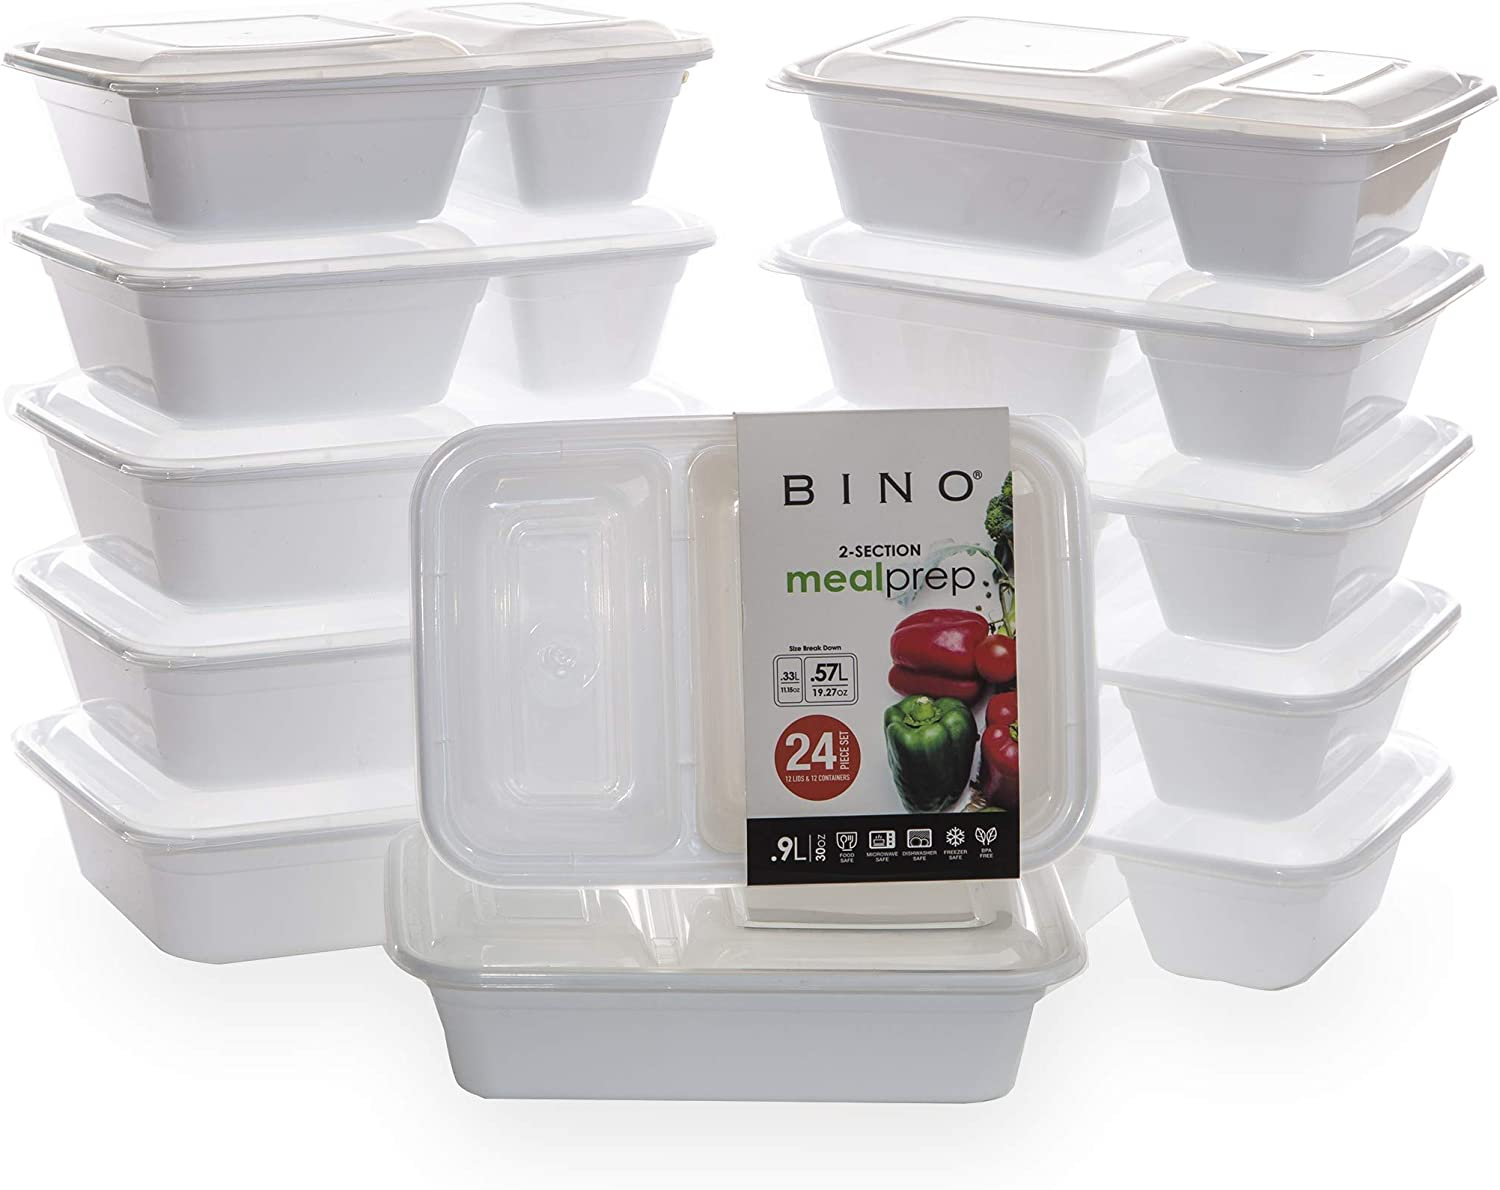 BINO Meal Prep Containers with Lids - 2 Compartment /30 oz [12-Pack], White - Bento Box Lunch Containers for Adults Food Containers Meal Prep Food Prep Containers Set